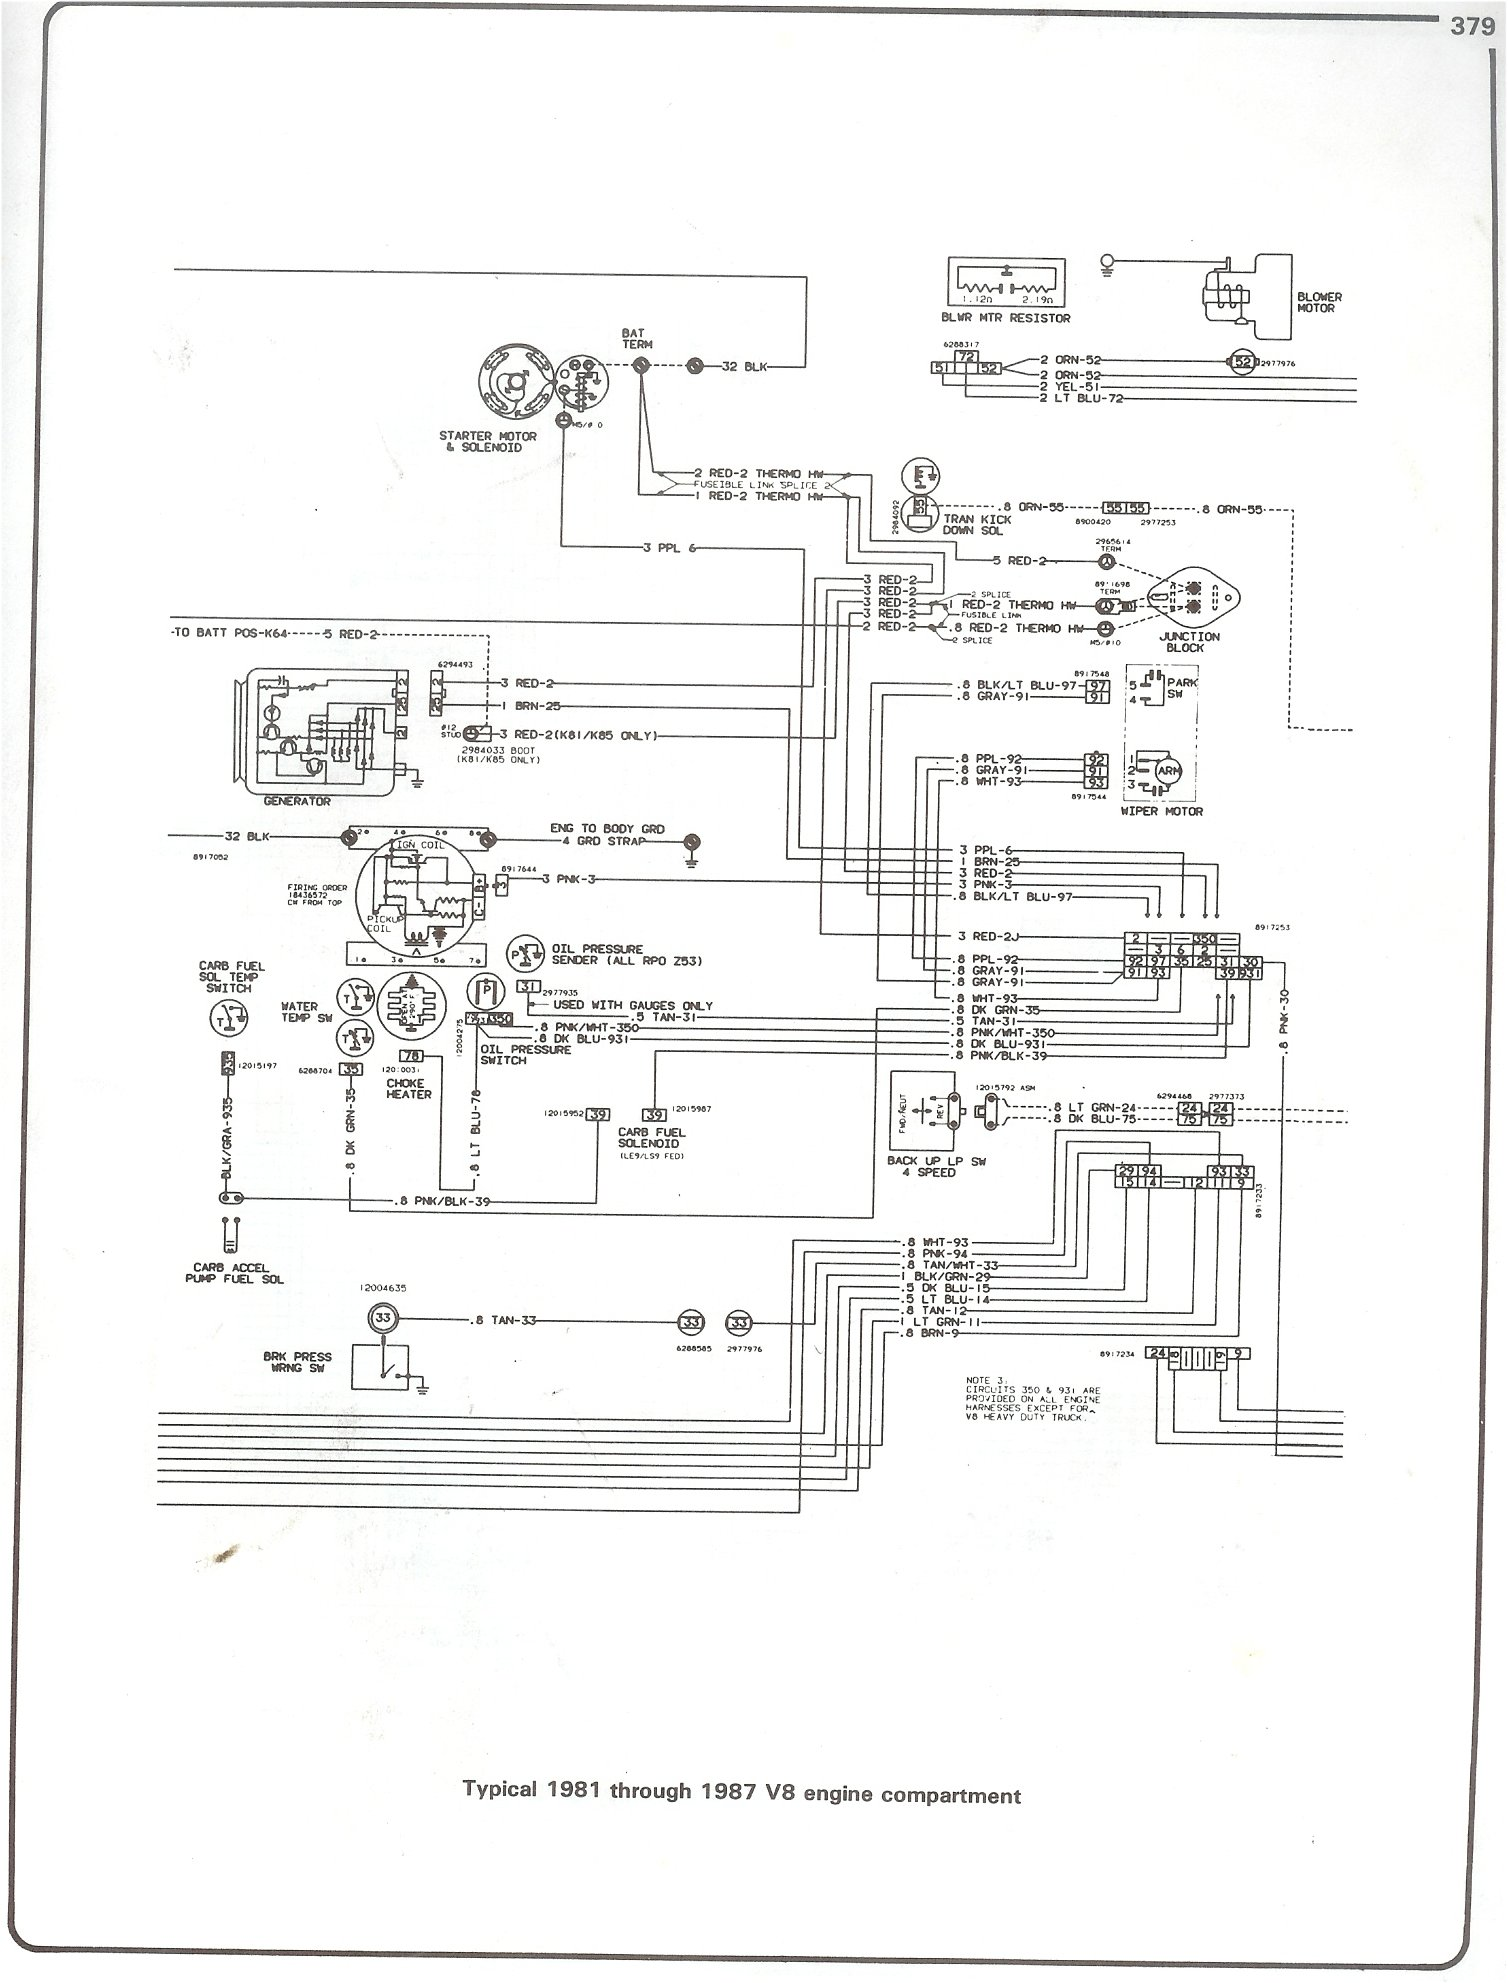 81 87_V8_engine complete 73 87 wiring diagrams Chevy Wiring Harness Diagram at edmiracle.co